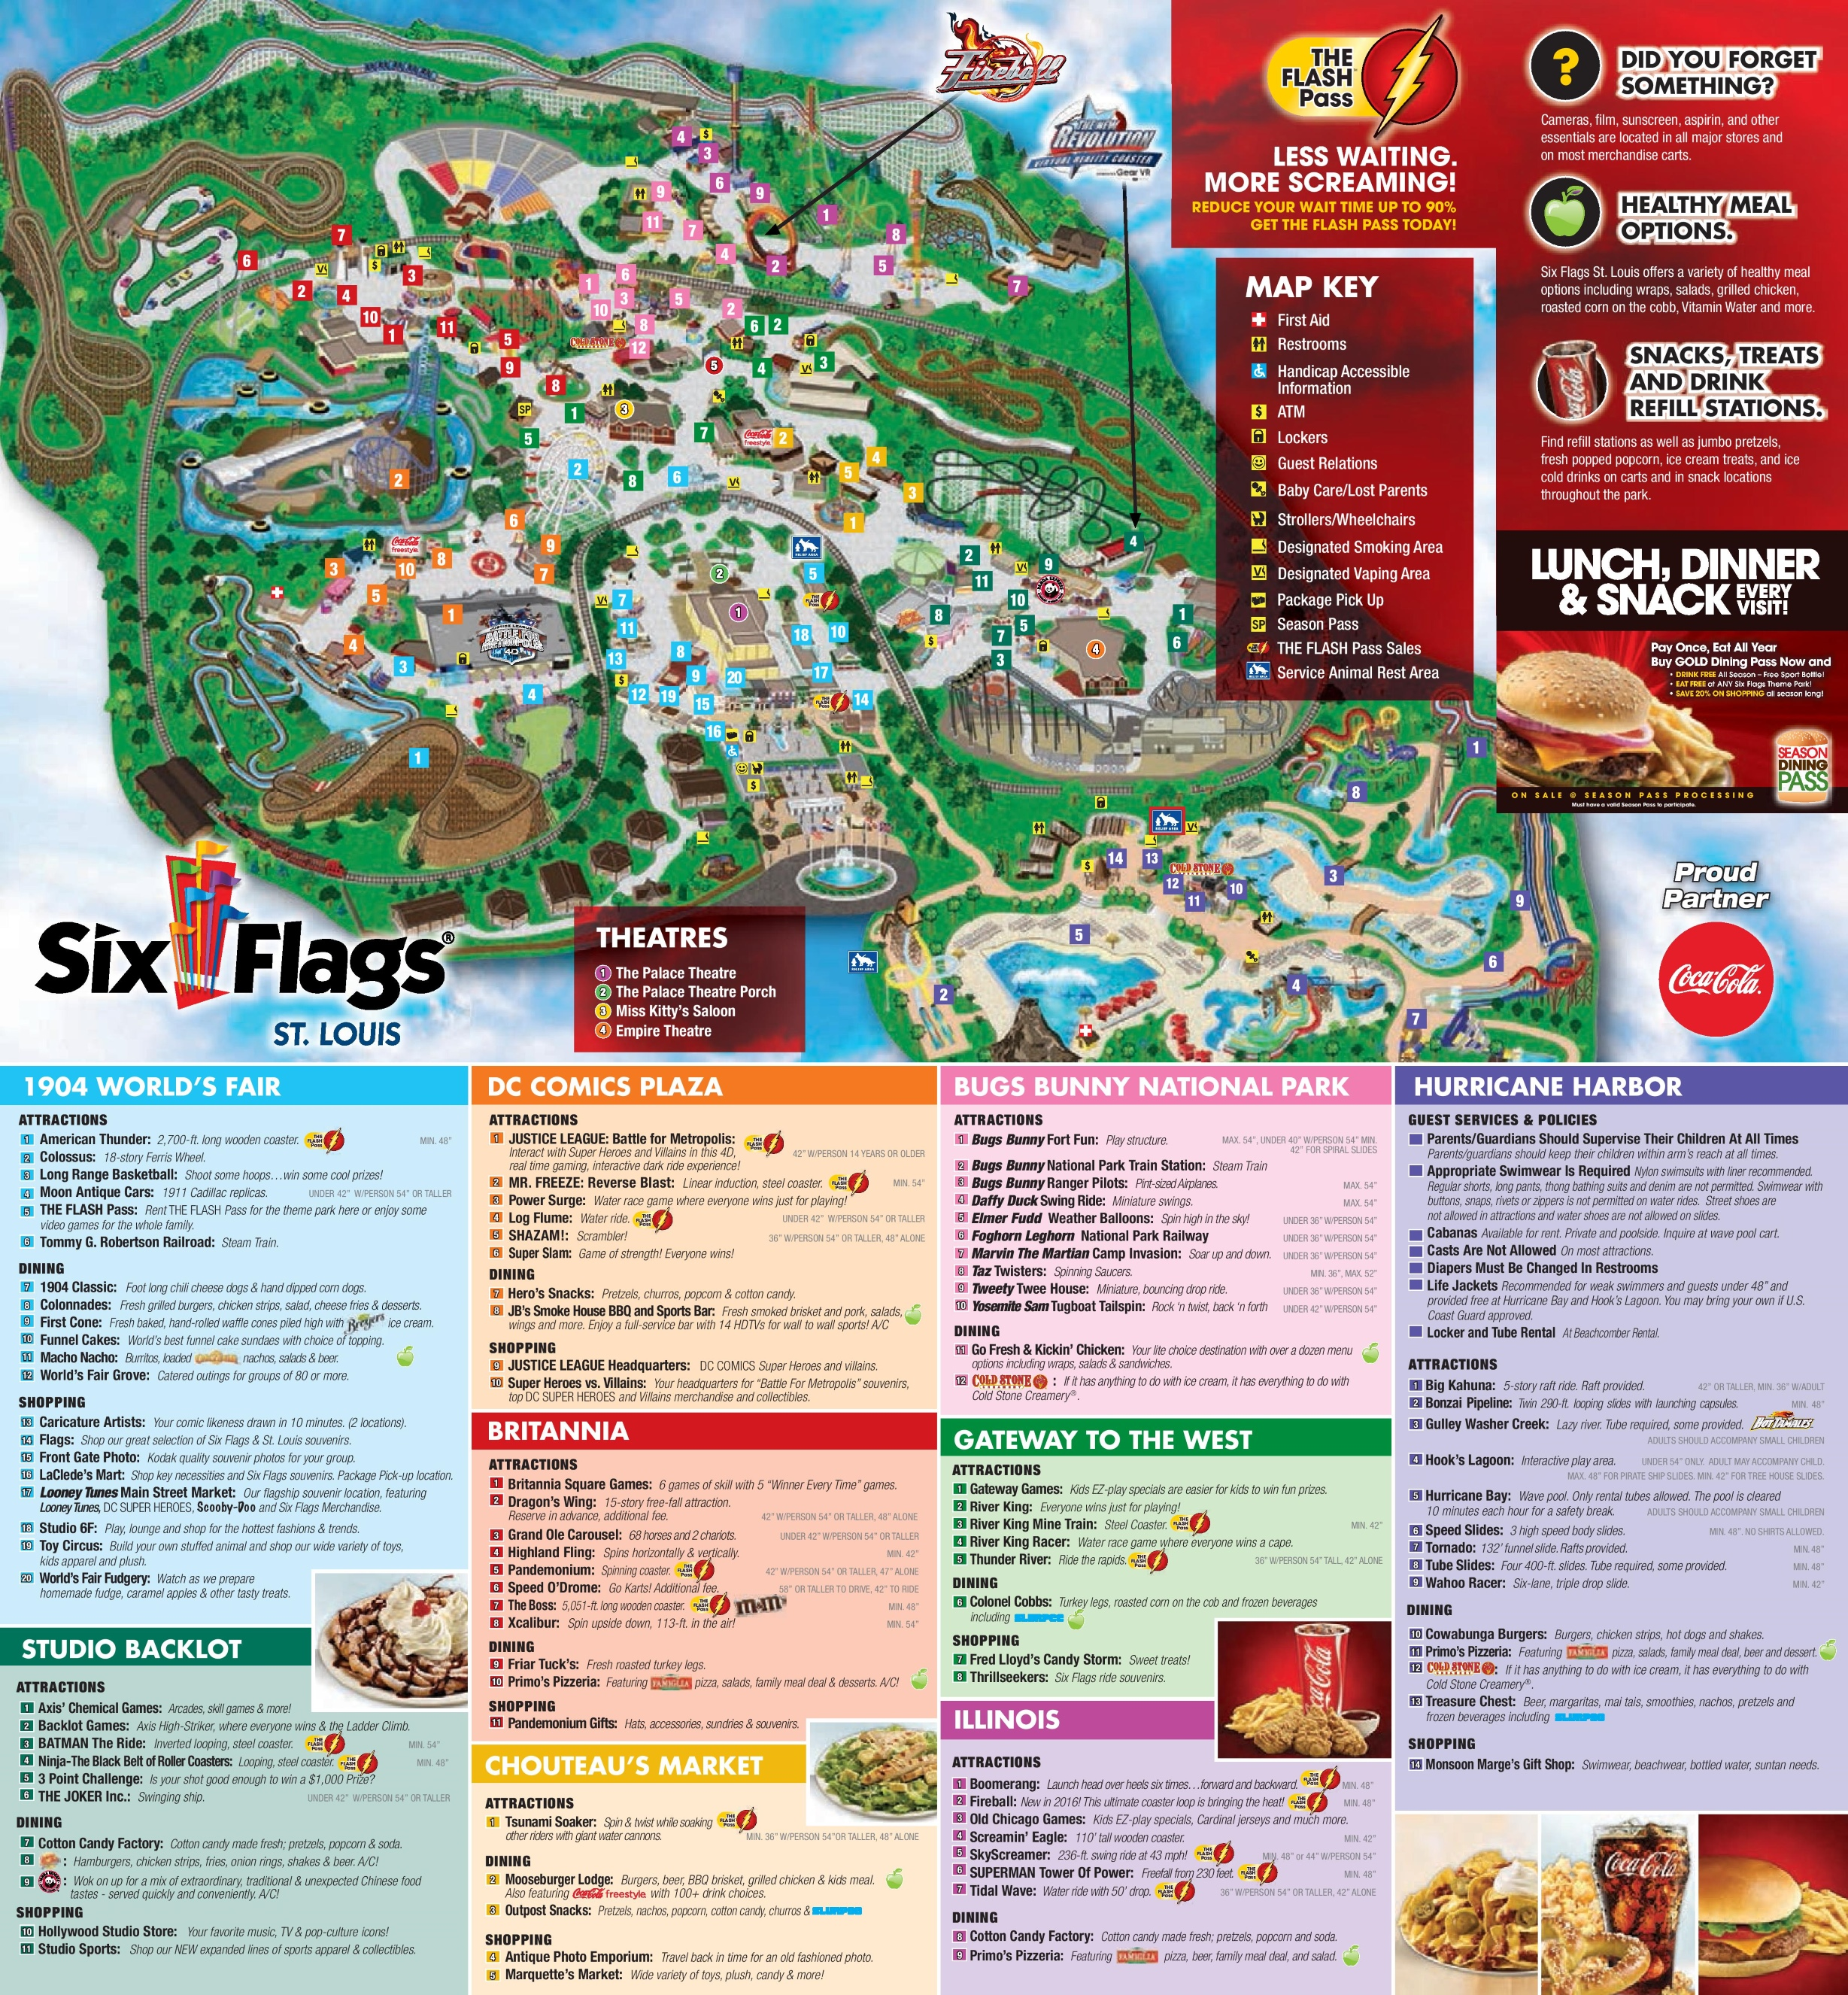 Six Flags Chicago Map Six Flags St. Louis Park map